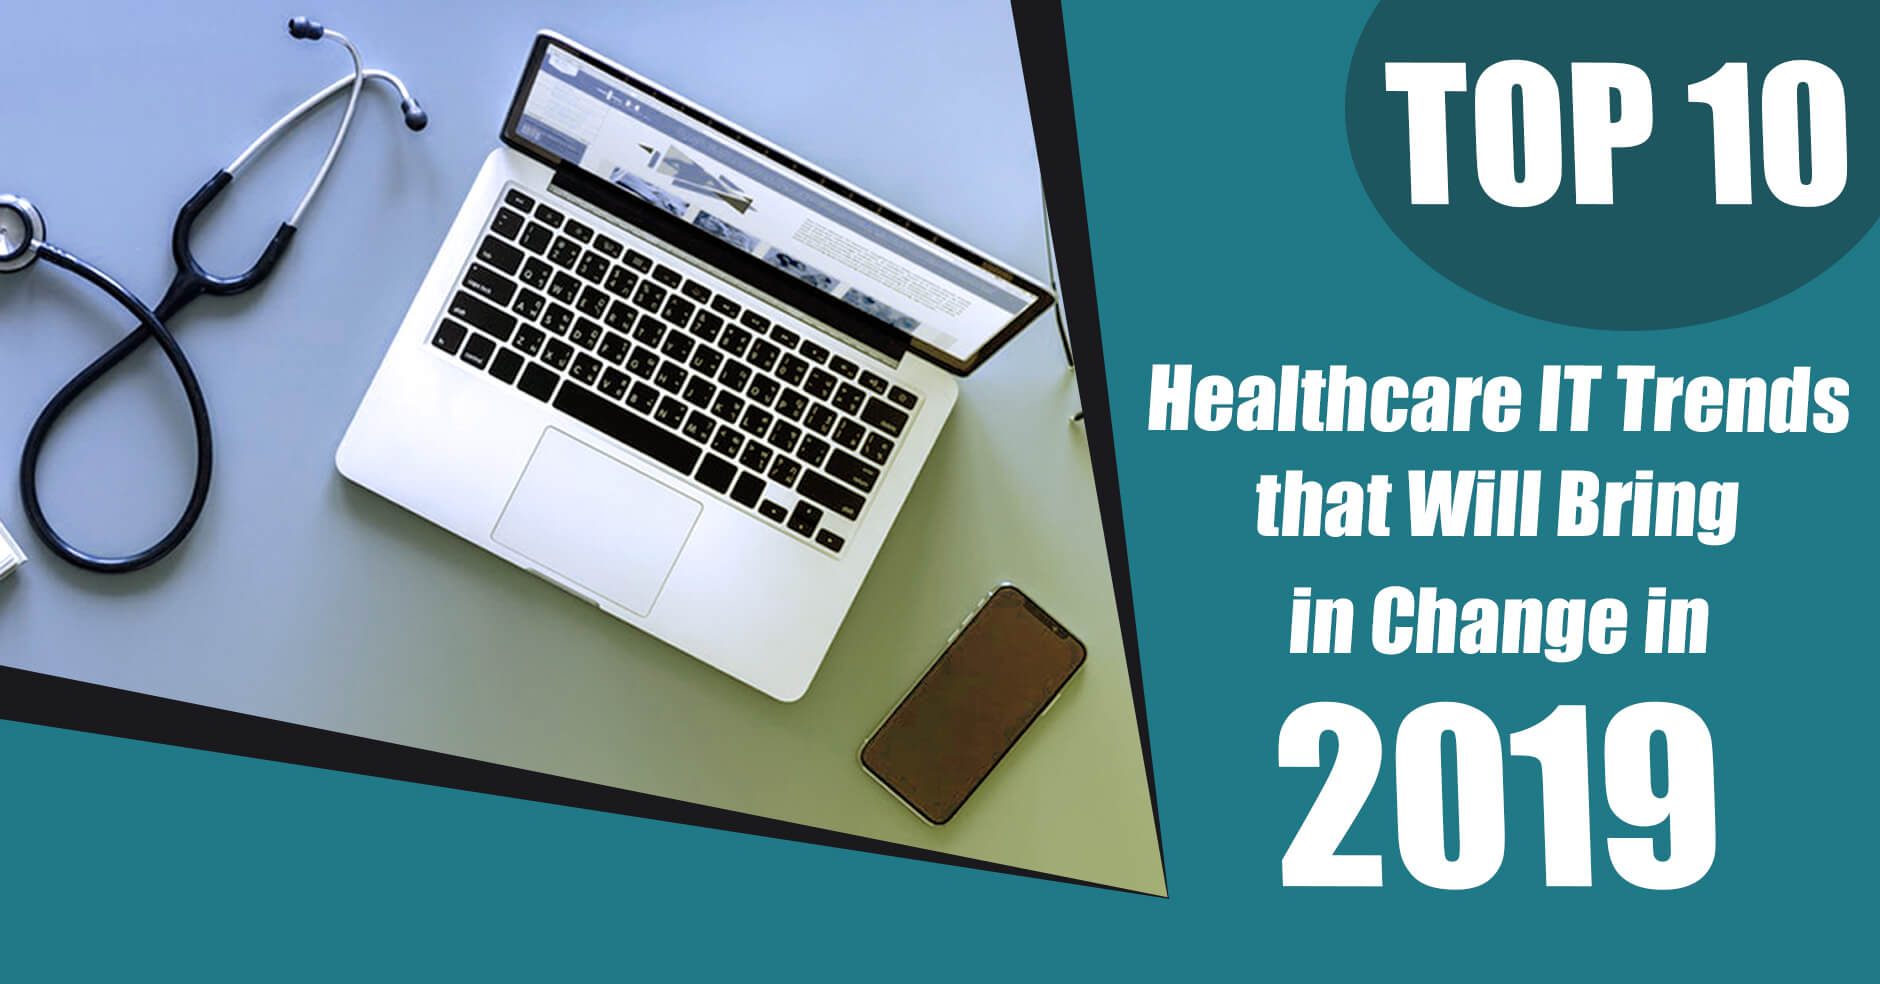 Top 10 Healthcare IT Trends that Will Bring in Change in 2019